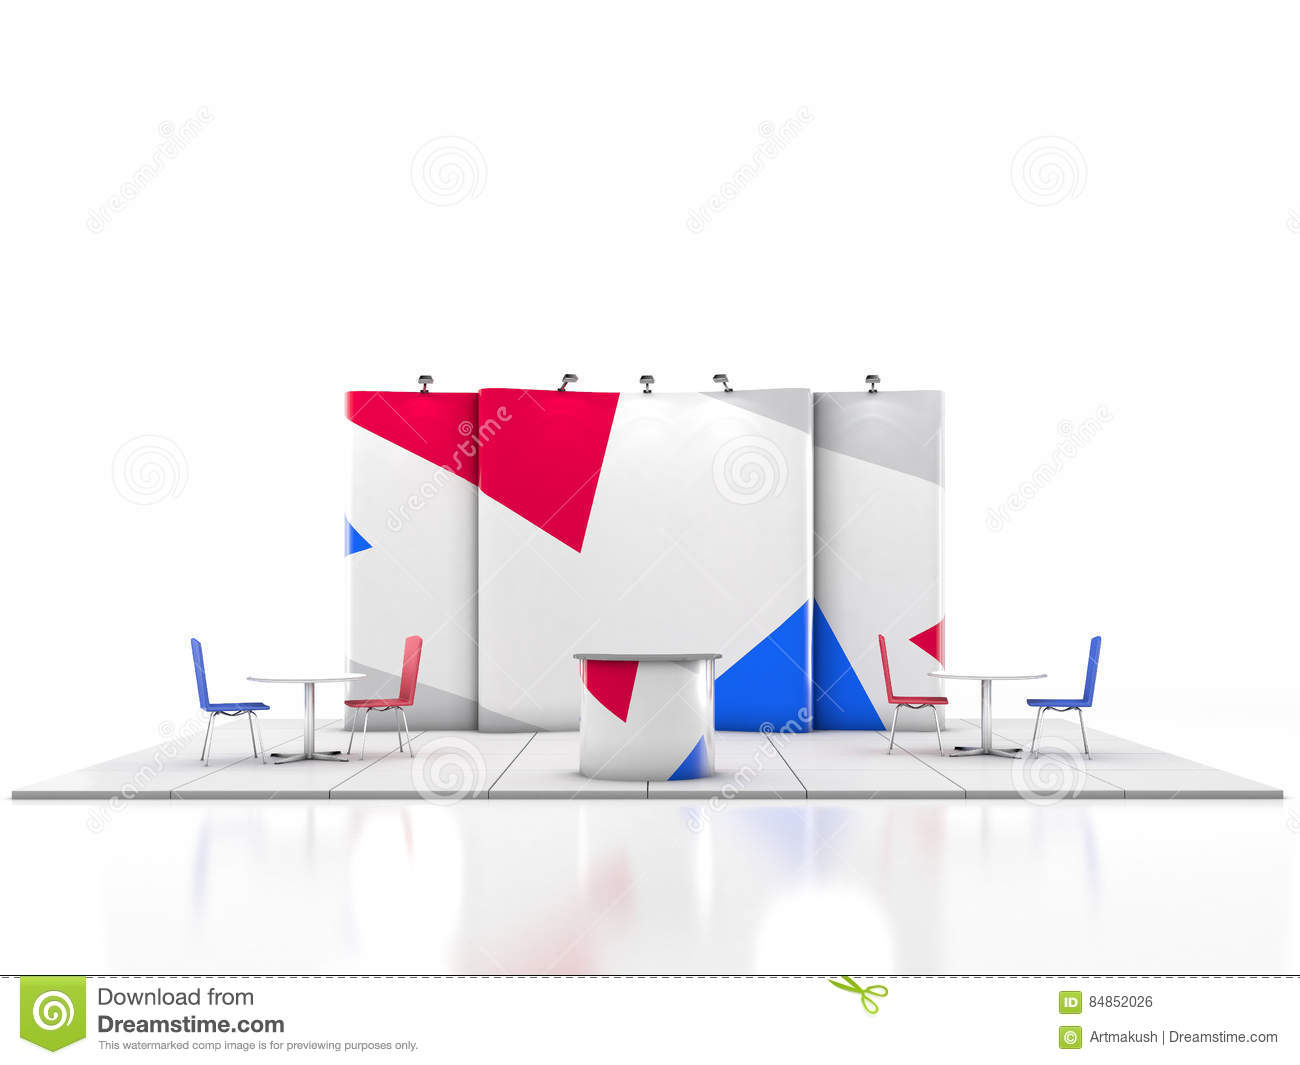 Exhibition Stand Design Illustrator : Blank creative exhibition stand design with color shapes